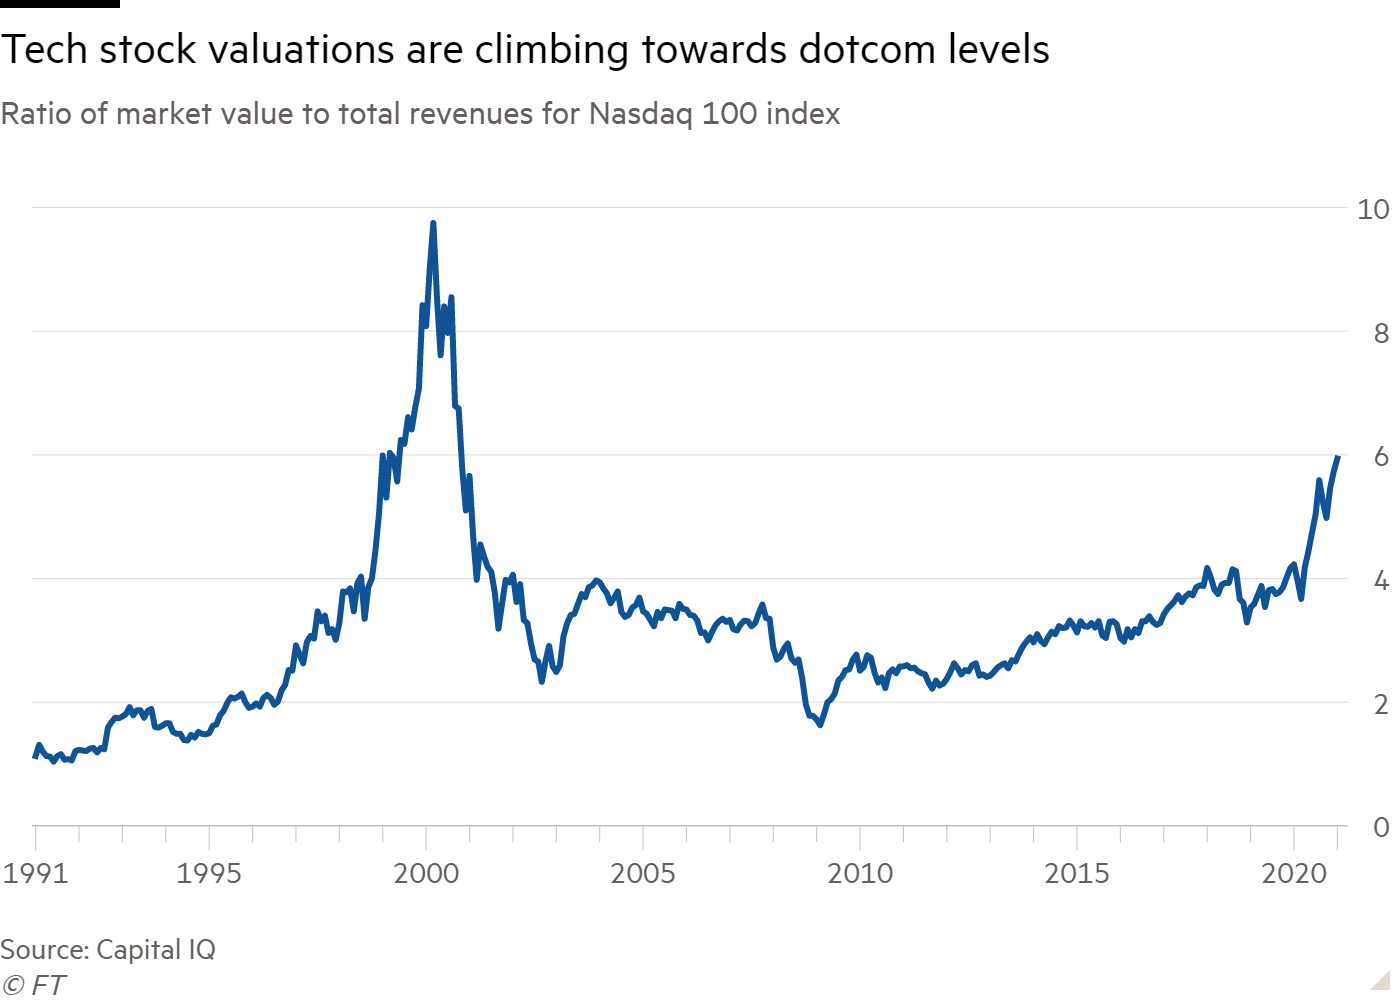 Line chart of Ratio of market value to total revenues for Nasdaq 100 index showing Tech stock valuations are climbing towards dotcom levels